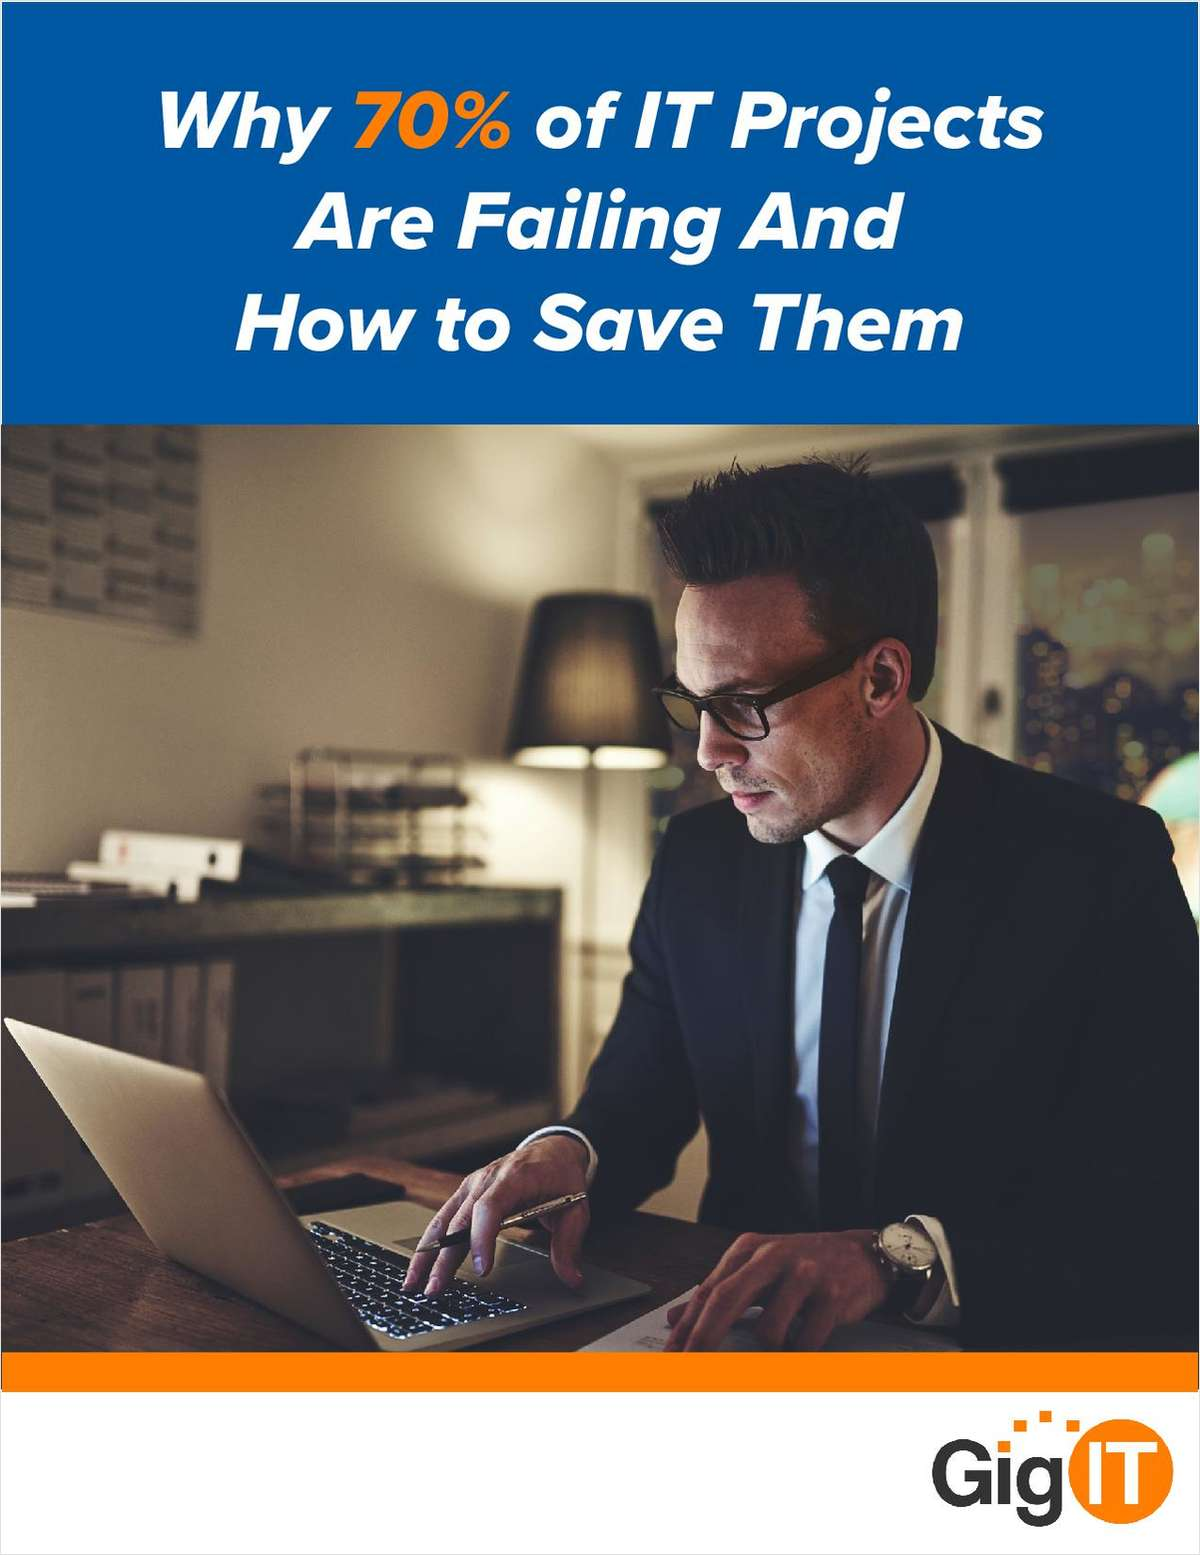 Why 70% of IT Projects Are Failing And How to Save Them